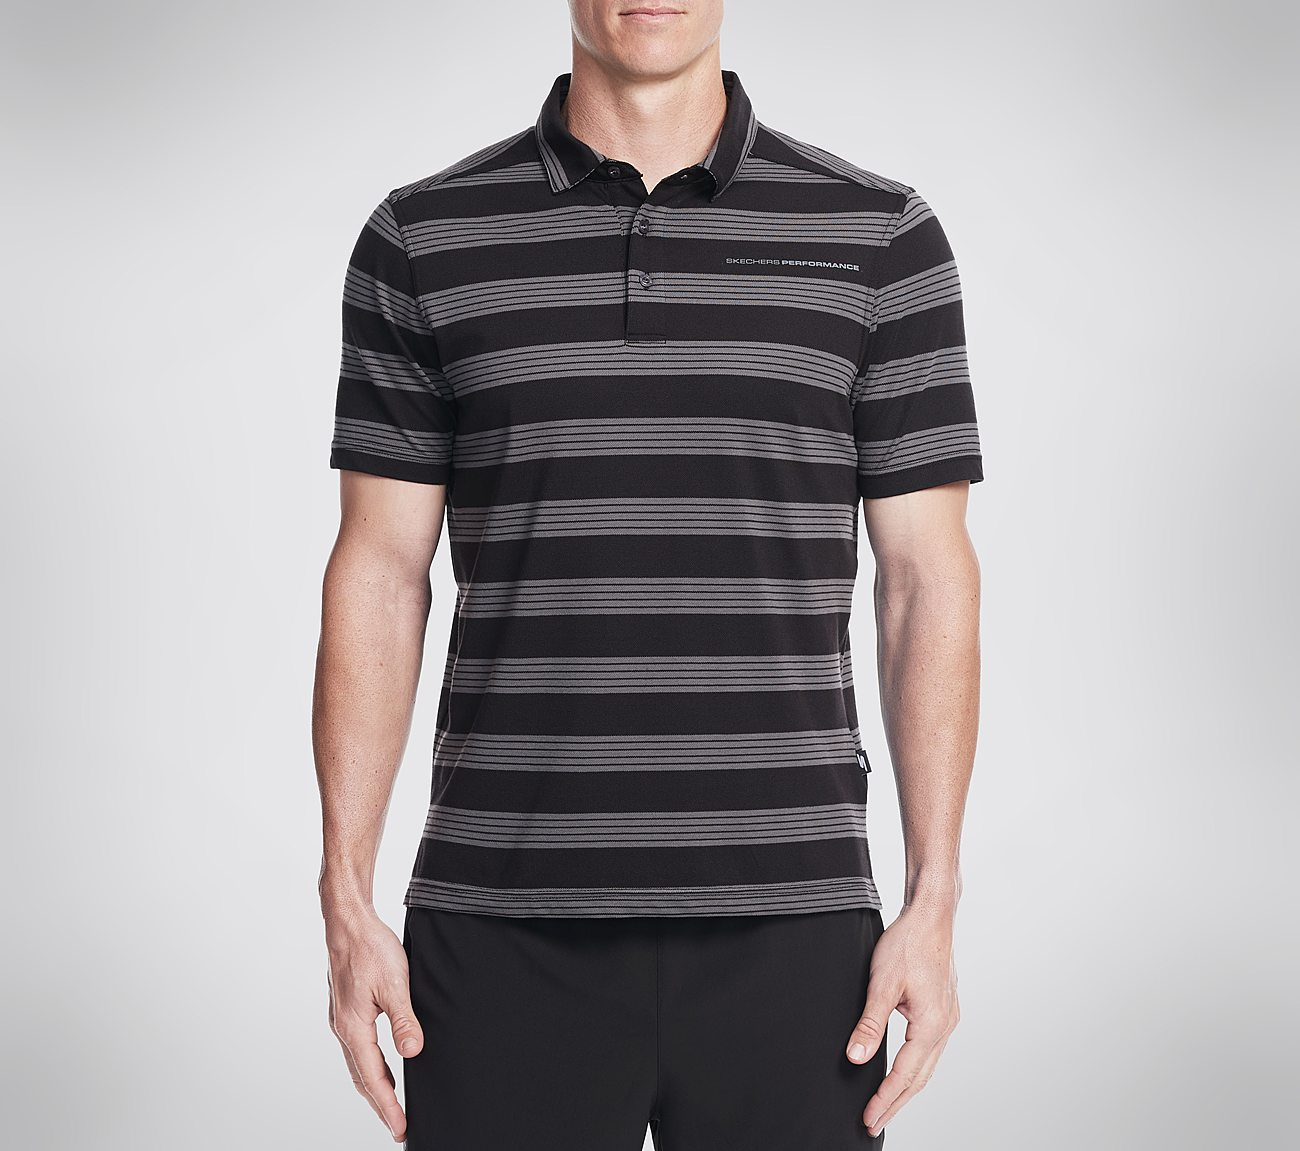 Skechers On the GO Del Mar Polo Shirt